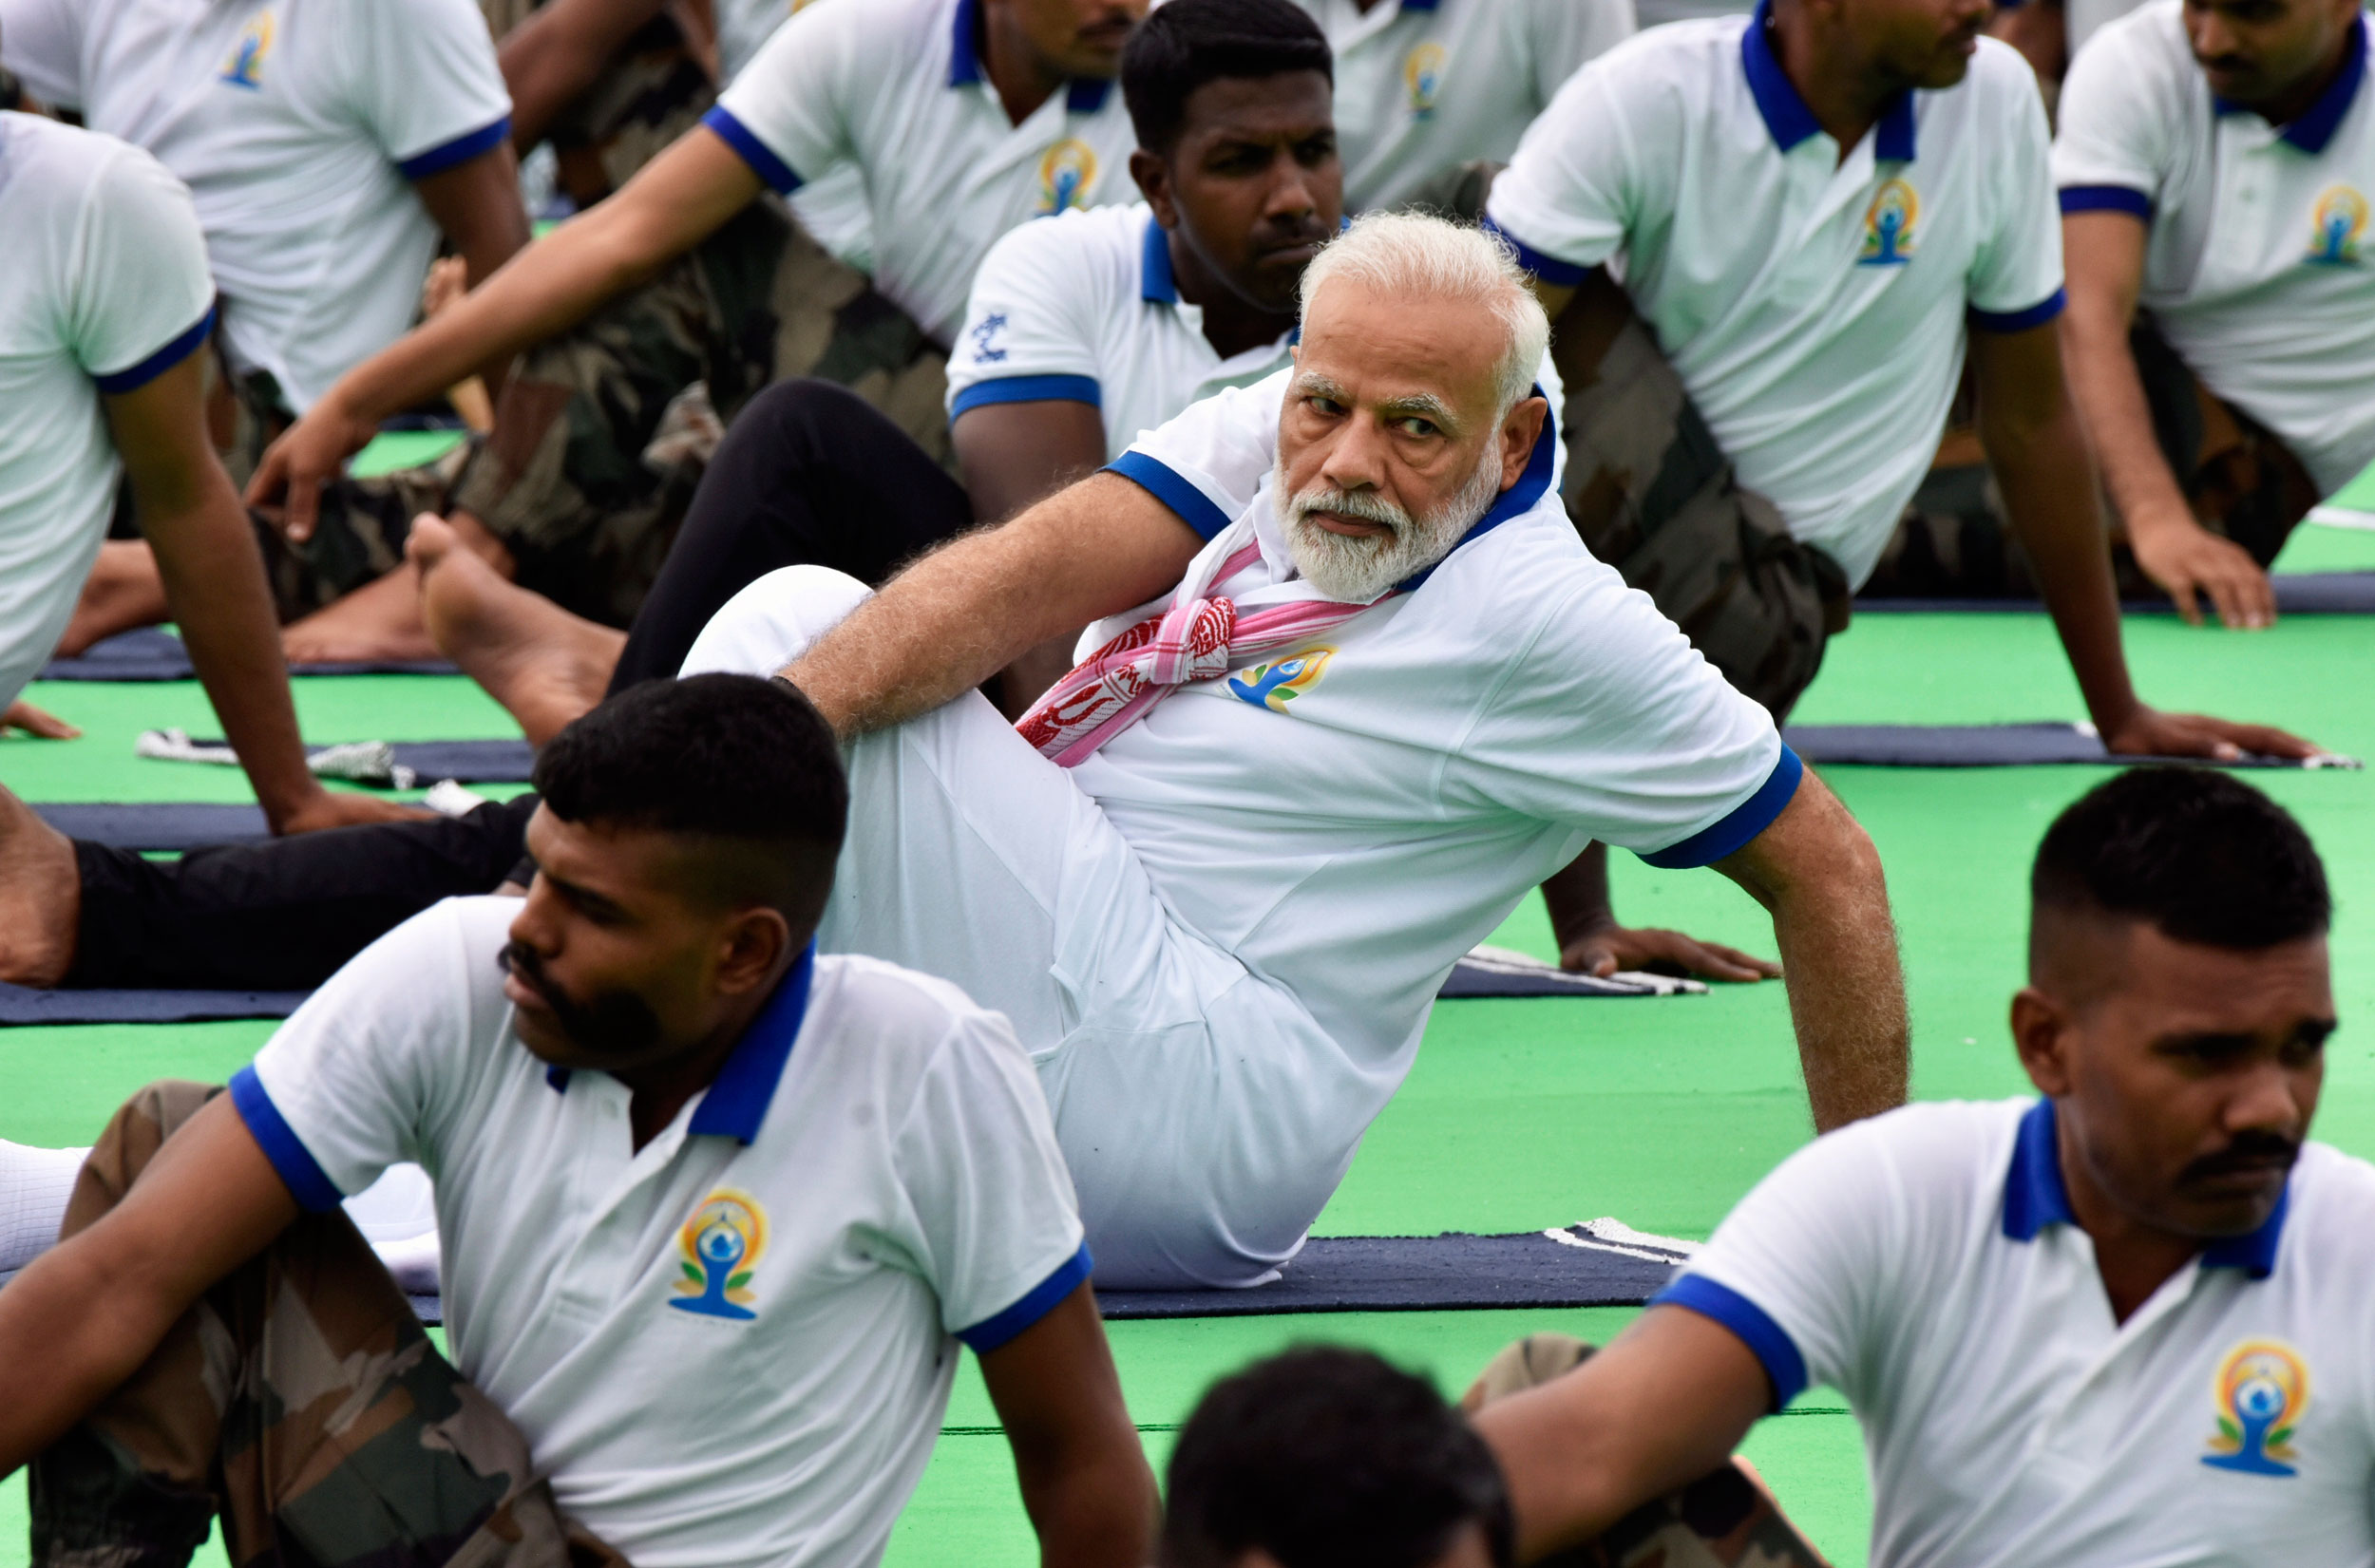 Does not the prime minister set time aside from his demanding schedule to strike impressive poses on International Yoga Day?